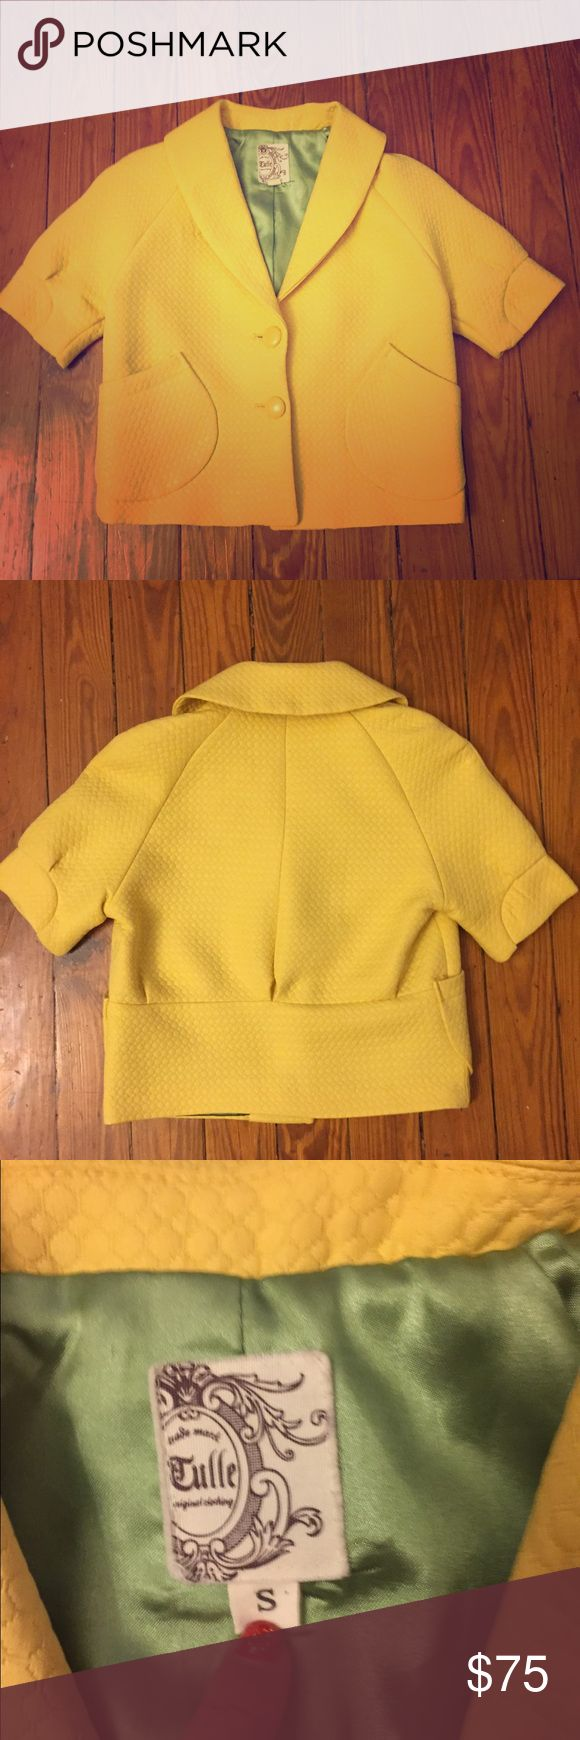 Vintage Yellow Crop Blazer Rare Find by Tulle Sm Vintage Yellow Crop Blazer Rare Find by Tulle Size Small. Would fit xs too. In excellent vintage condition. No imperfections. Era 40's/50's. Adjustable Collar. Original yellow buttons. Beautiful Green Silk Lining. Comment if you need measurements. Bundle and Save!!! Tulle Jackets & Coats Blazers